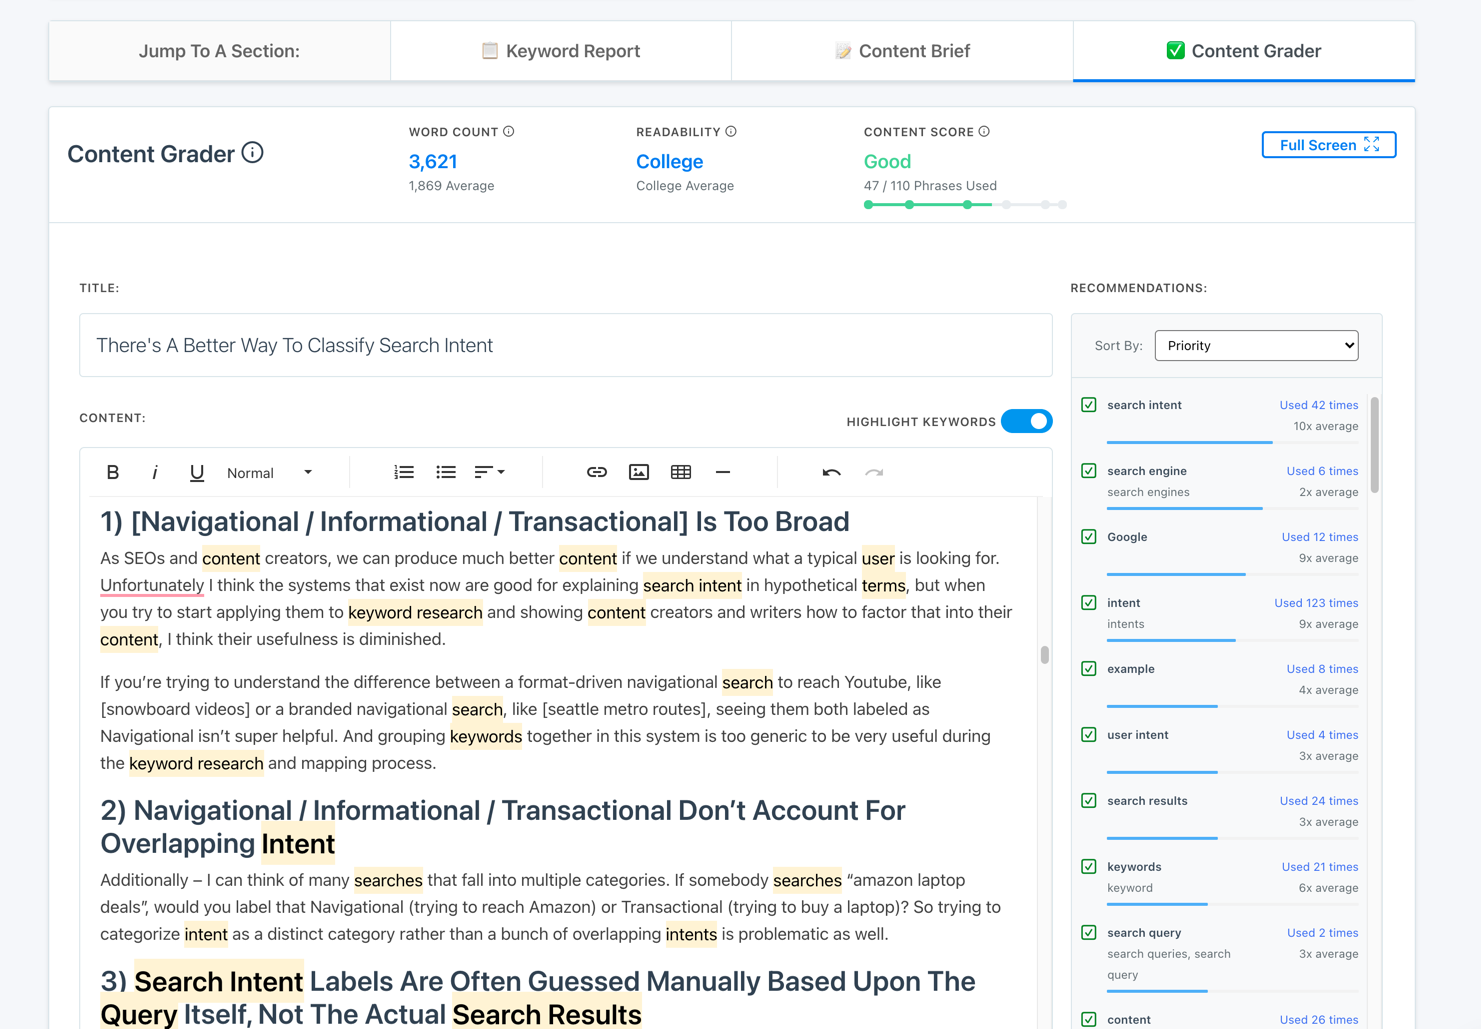 There's A Better Way To Classify Search Intent